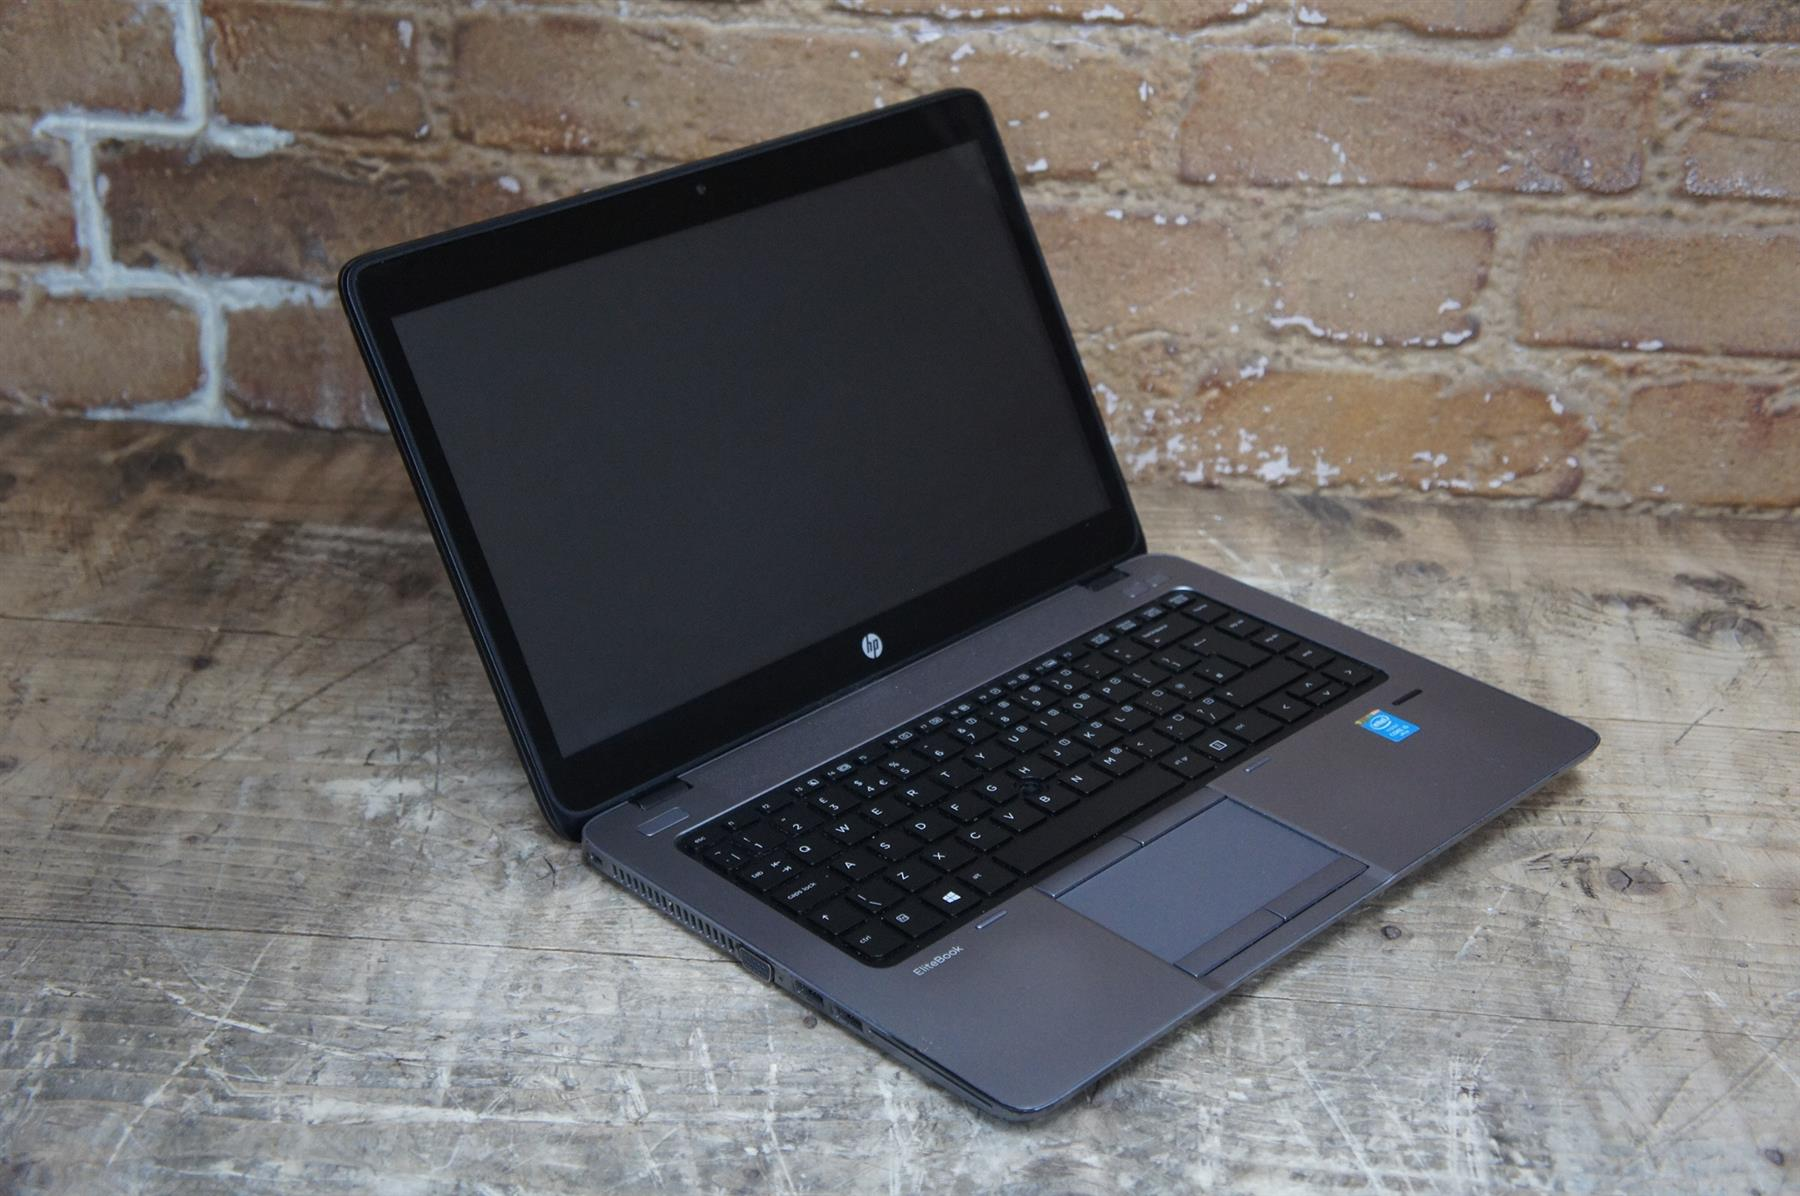 Details about HP Elitebook 840 G1 Core i5 4th Gen Grade D 14